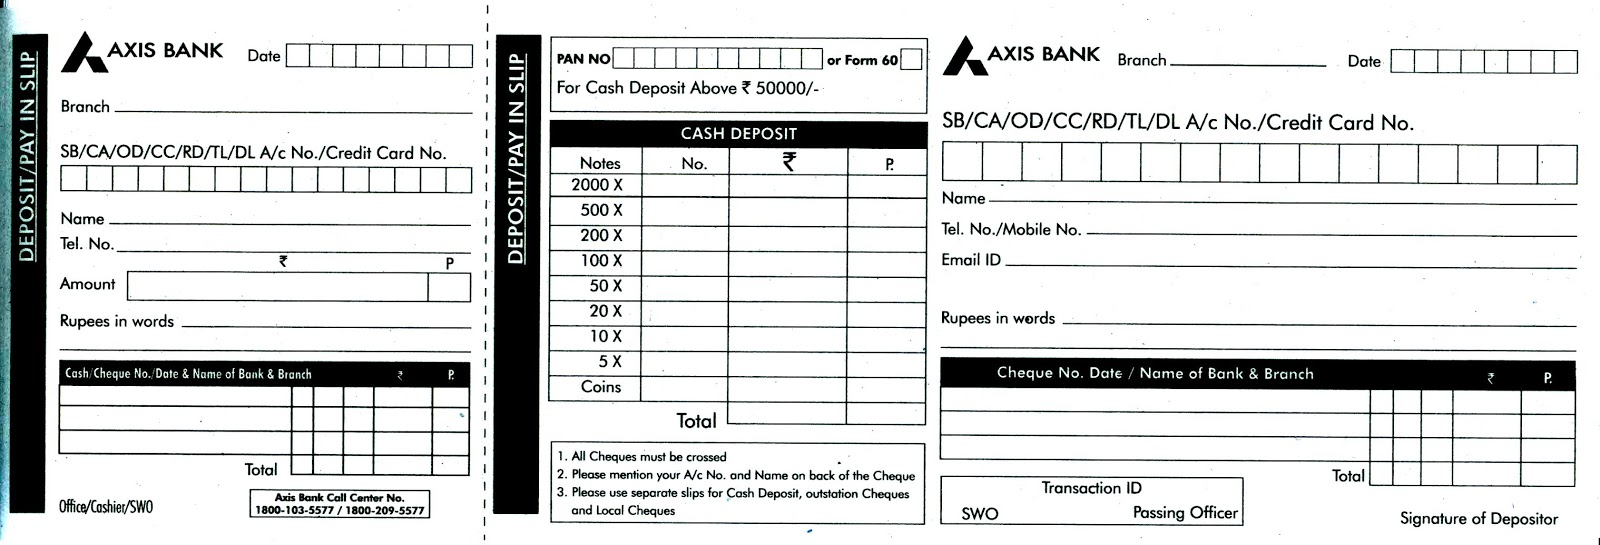 axis bank deposit form download  AXIS BANK CHEQUE AND CASH DEPOSIT / PAY IN SLIP ...